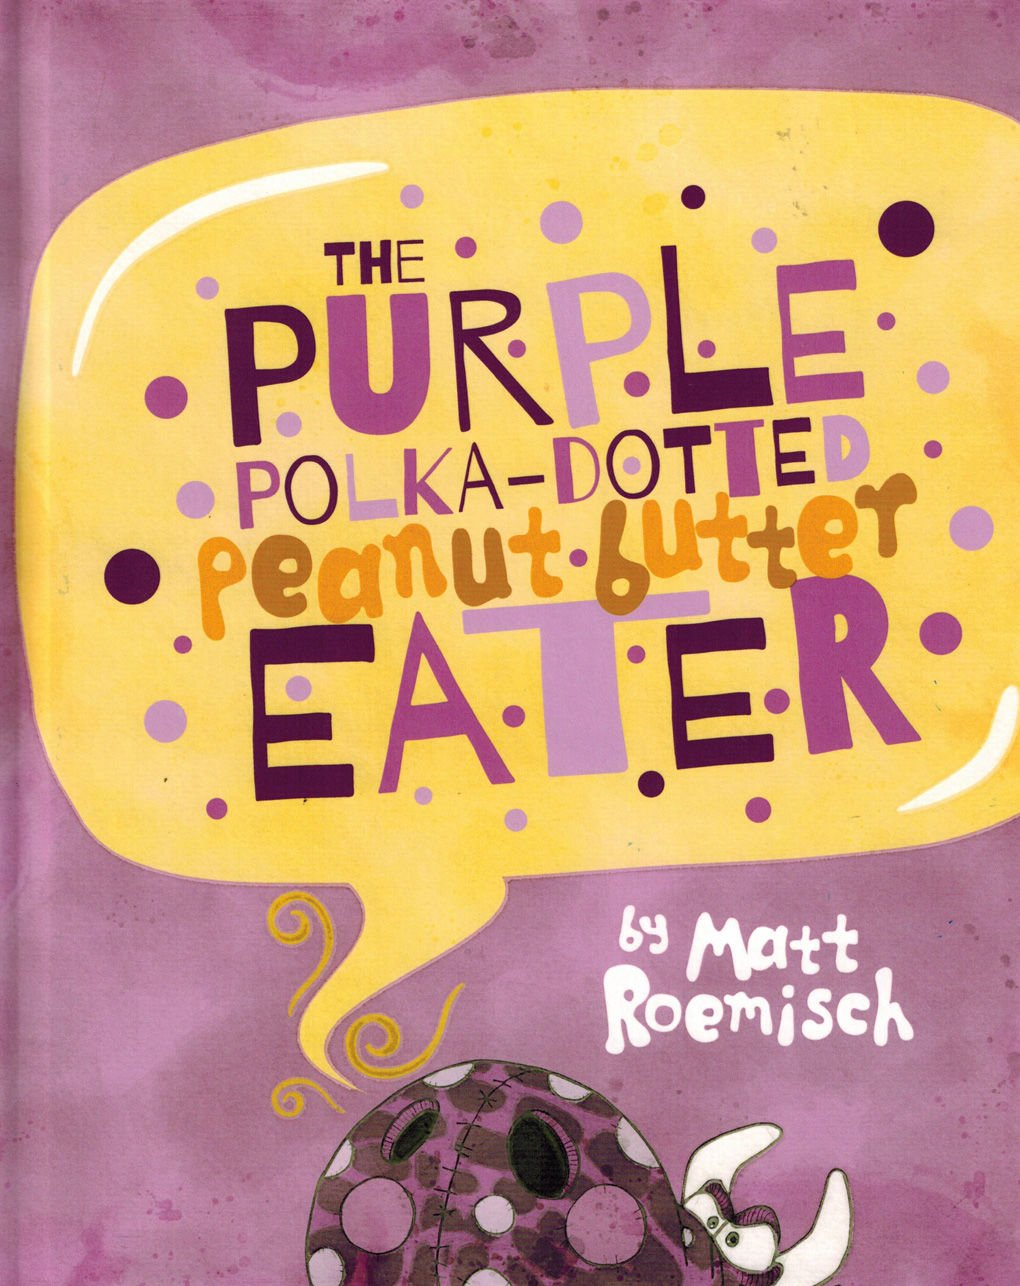 TEXAS READS: 'The Purple Polka-Dotted Peanut Butter Eater'